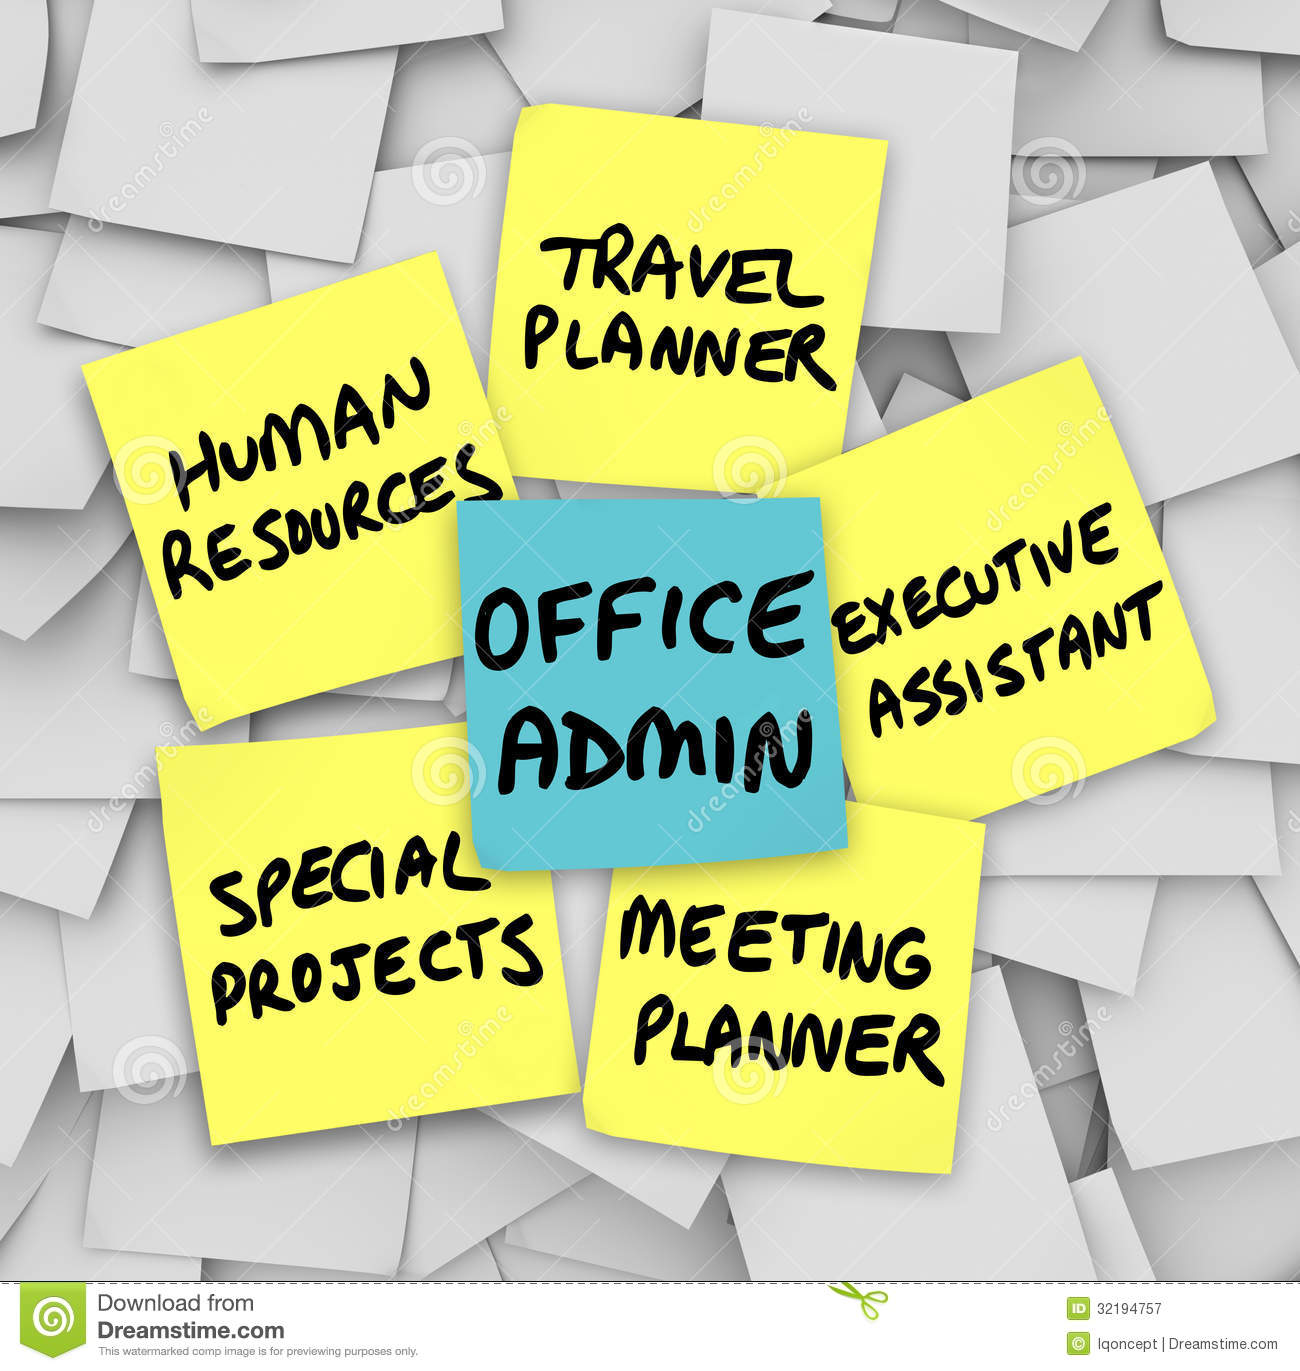 Office administrator job duties meeting travel planner executive stock illustration - Office administrator job responsibilities ...